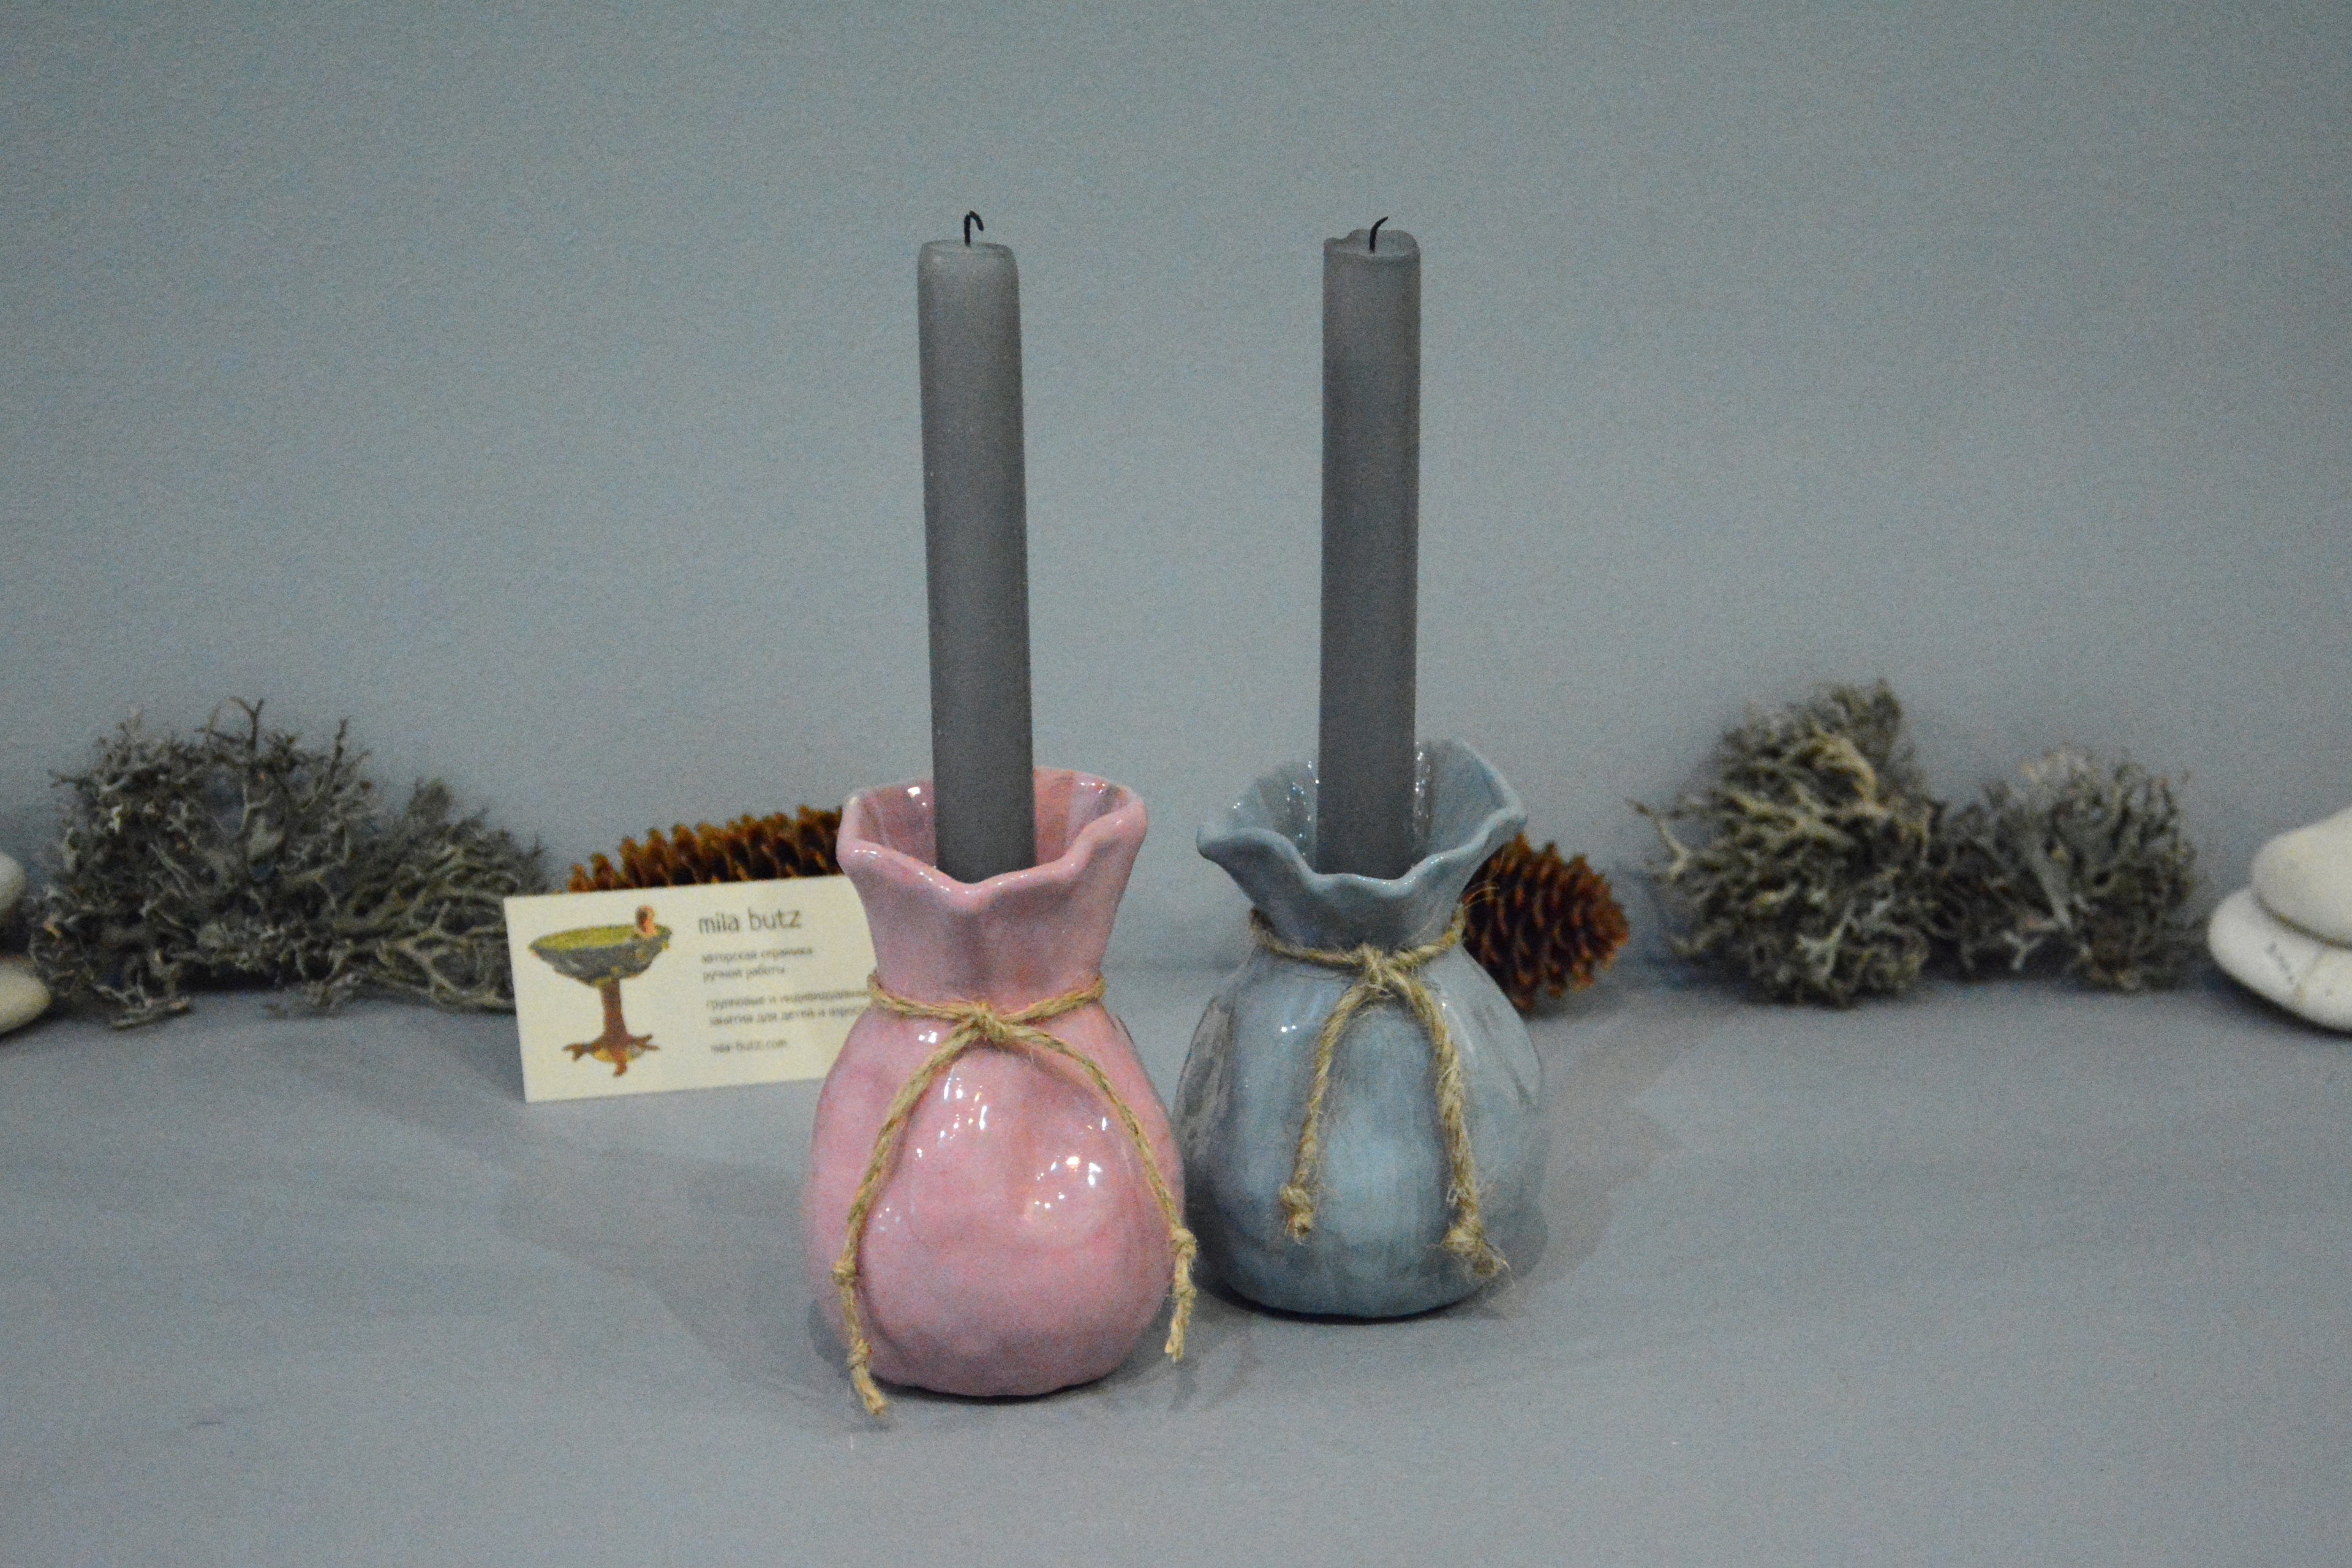 Ceramic small vase candlestick «Pink Bagful», height - 11 cm, photo 5 of 6. 1295.